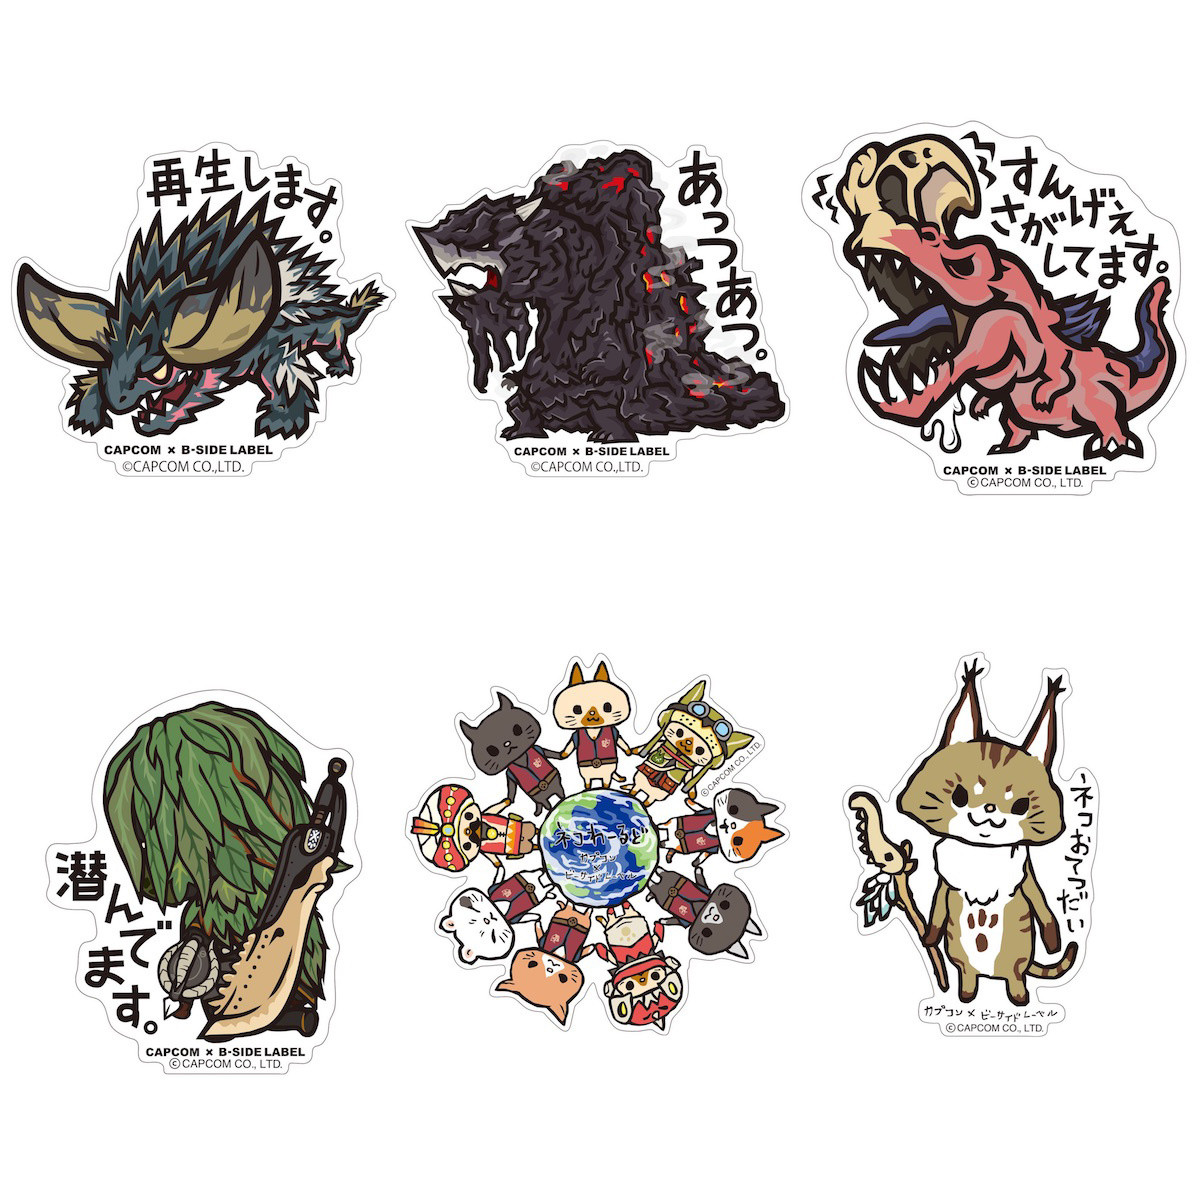 Capcom X B Side Label Monster Hunter World Stickers